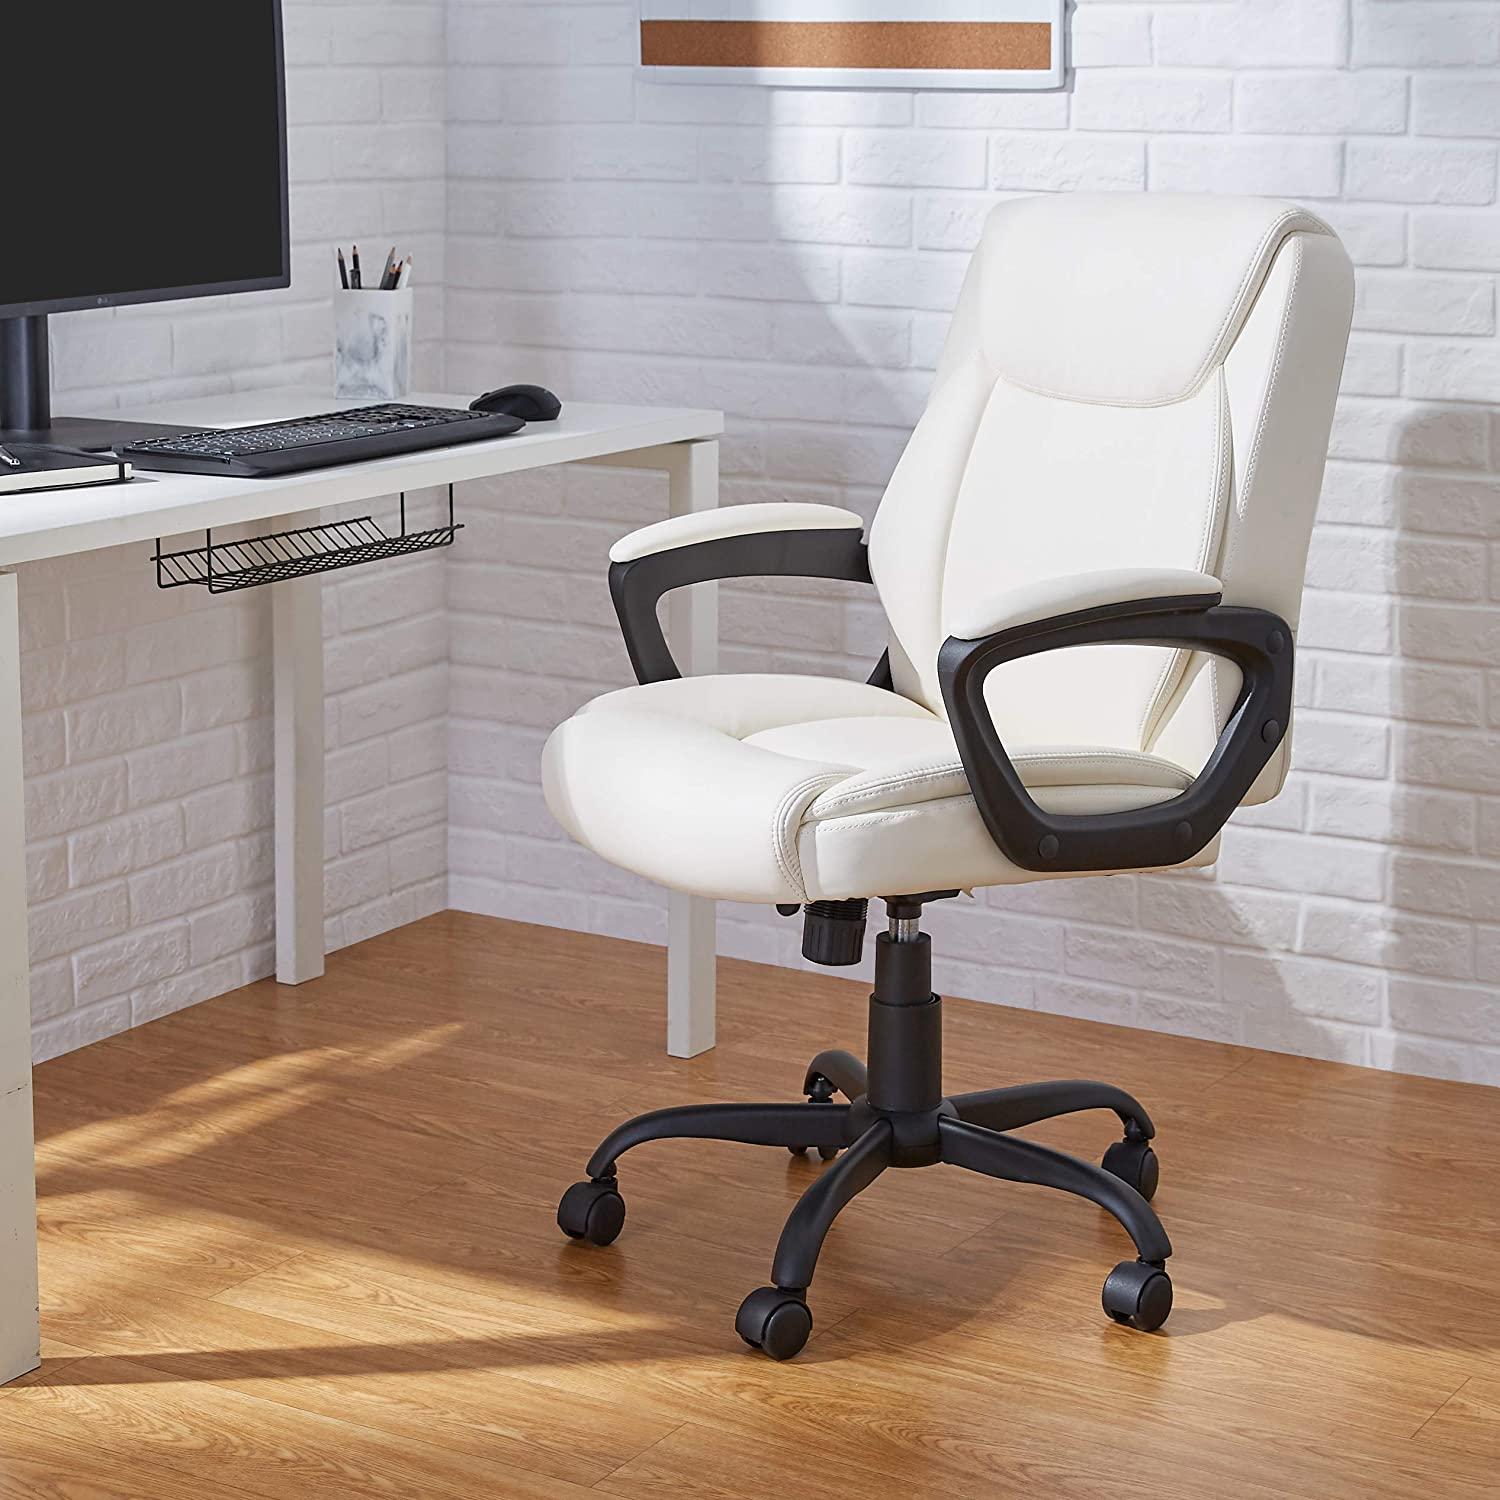 AmazonBasic Mid-Back Office Computer Desk Chair